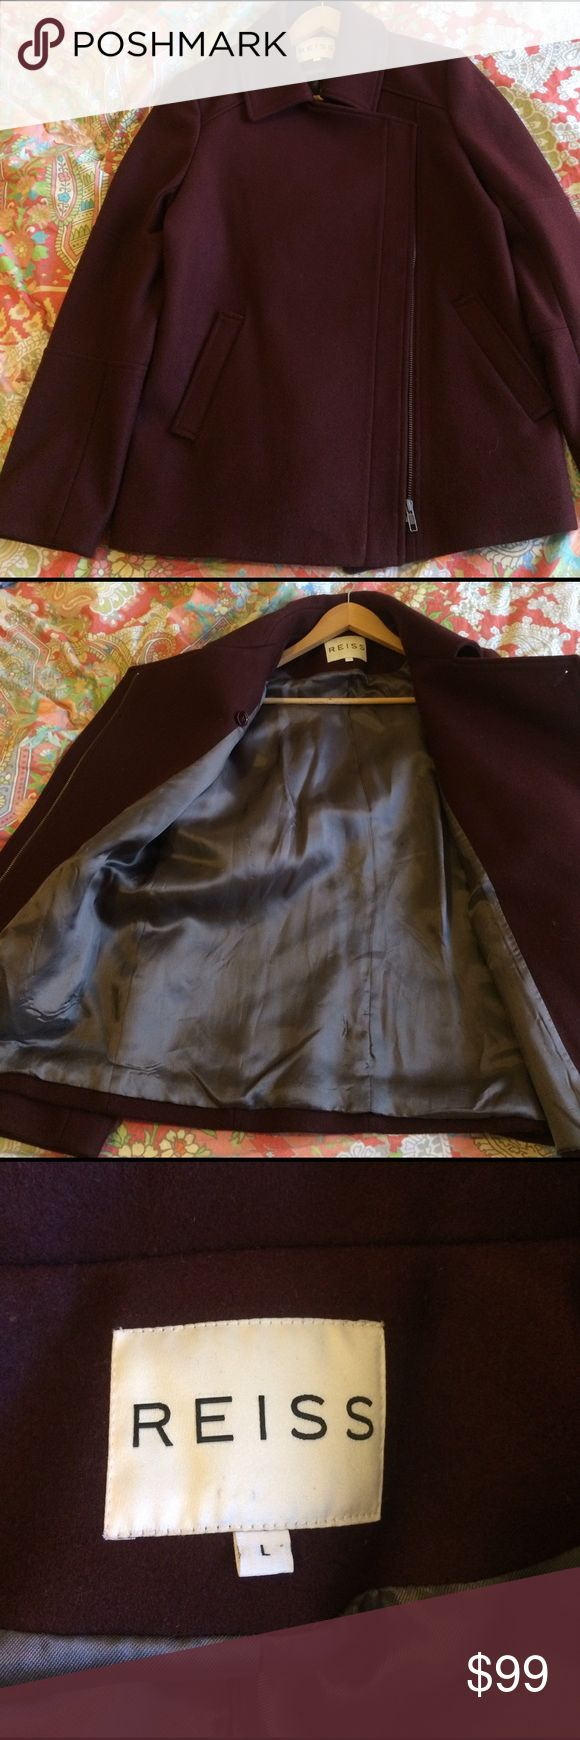 REISS LYNDON Wool wine color Coat Size L In excellent condition, it's just too big for me Reiss Jackets & Coats